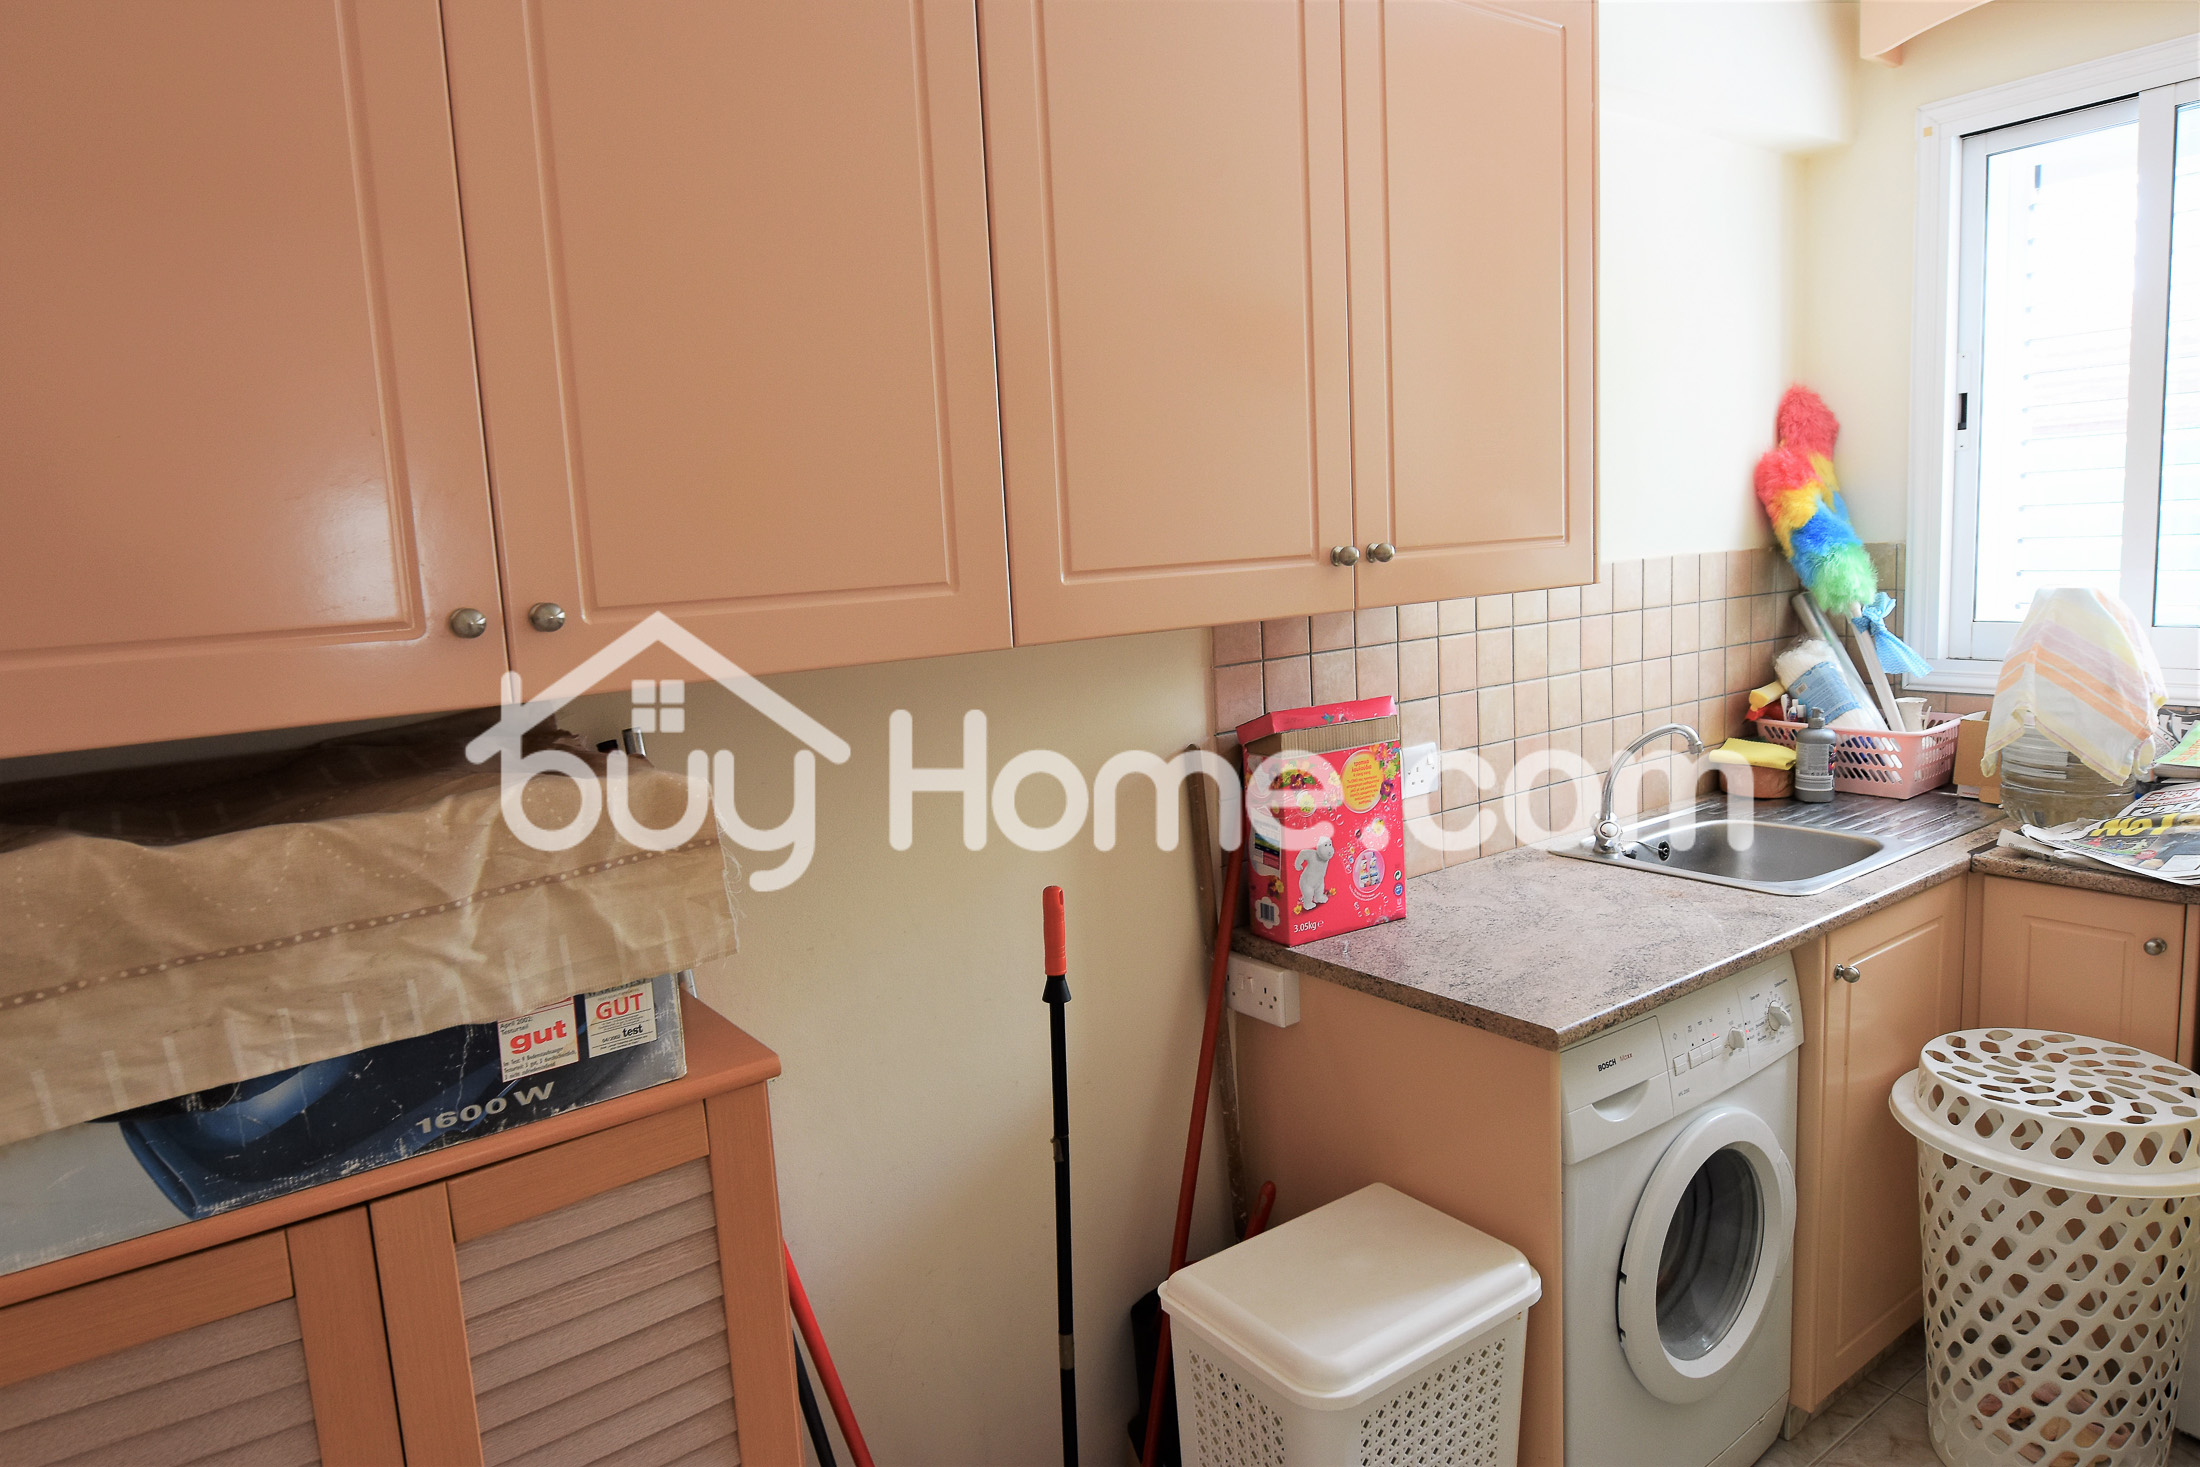 3 Bedroom Detached Bungalow | BuyHome